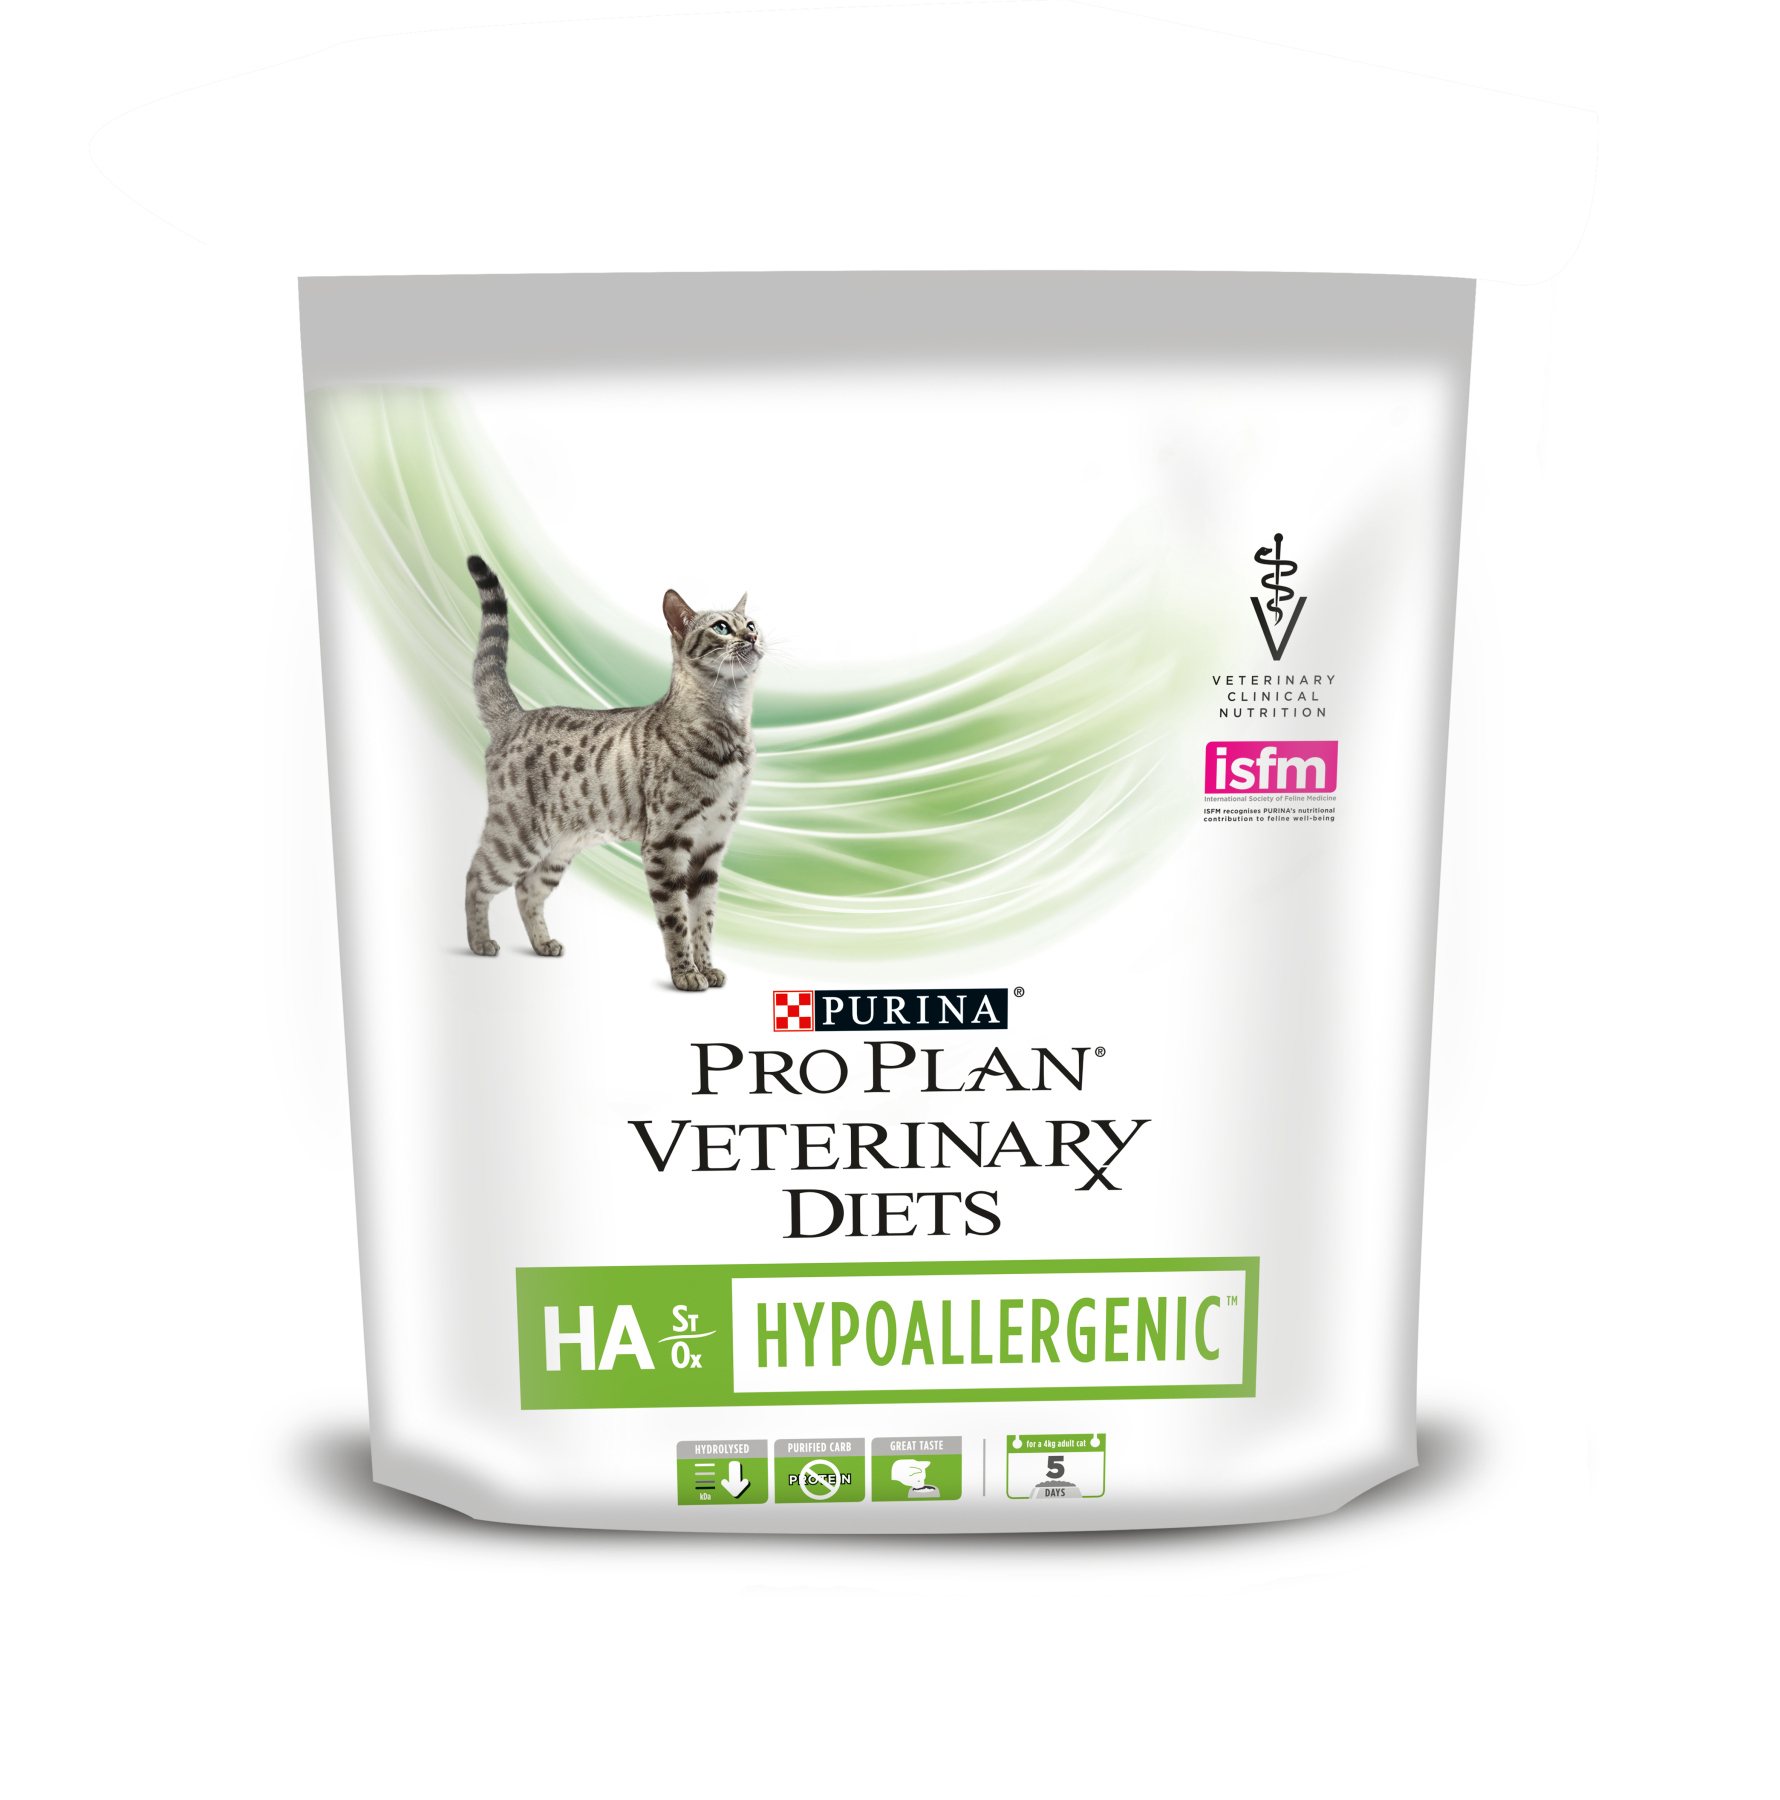 Pro Plan Veterinary Diets HA Hypoallergenic cat food in the treatment of food allergies, 325 gr image